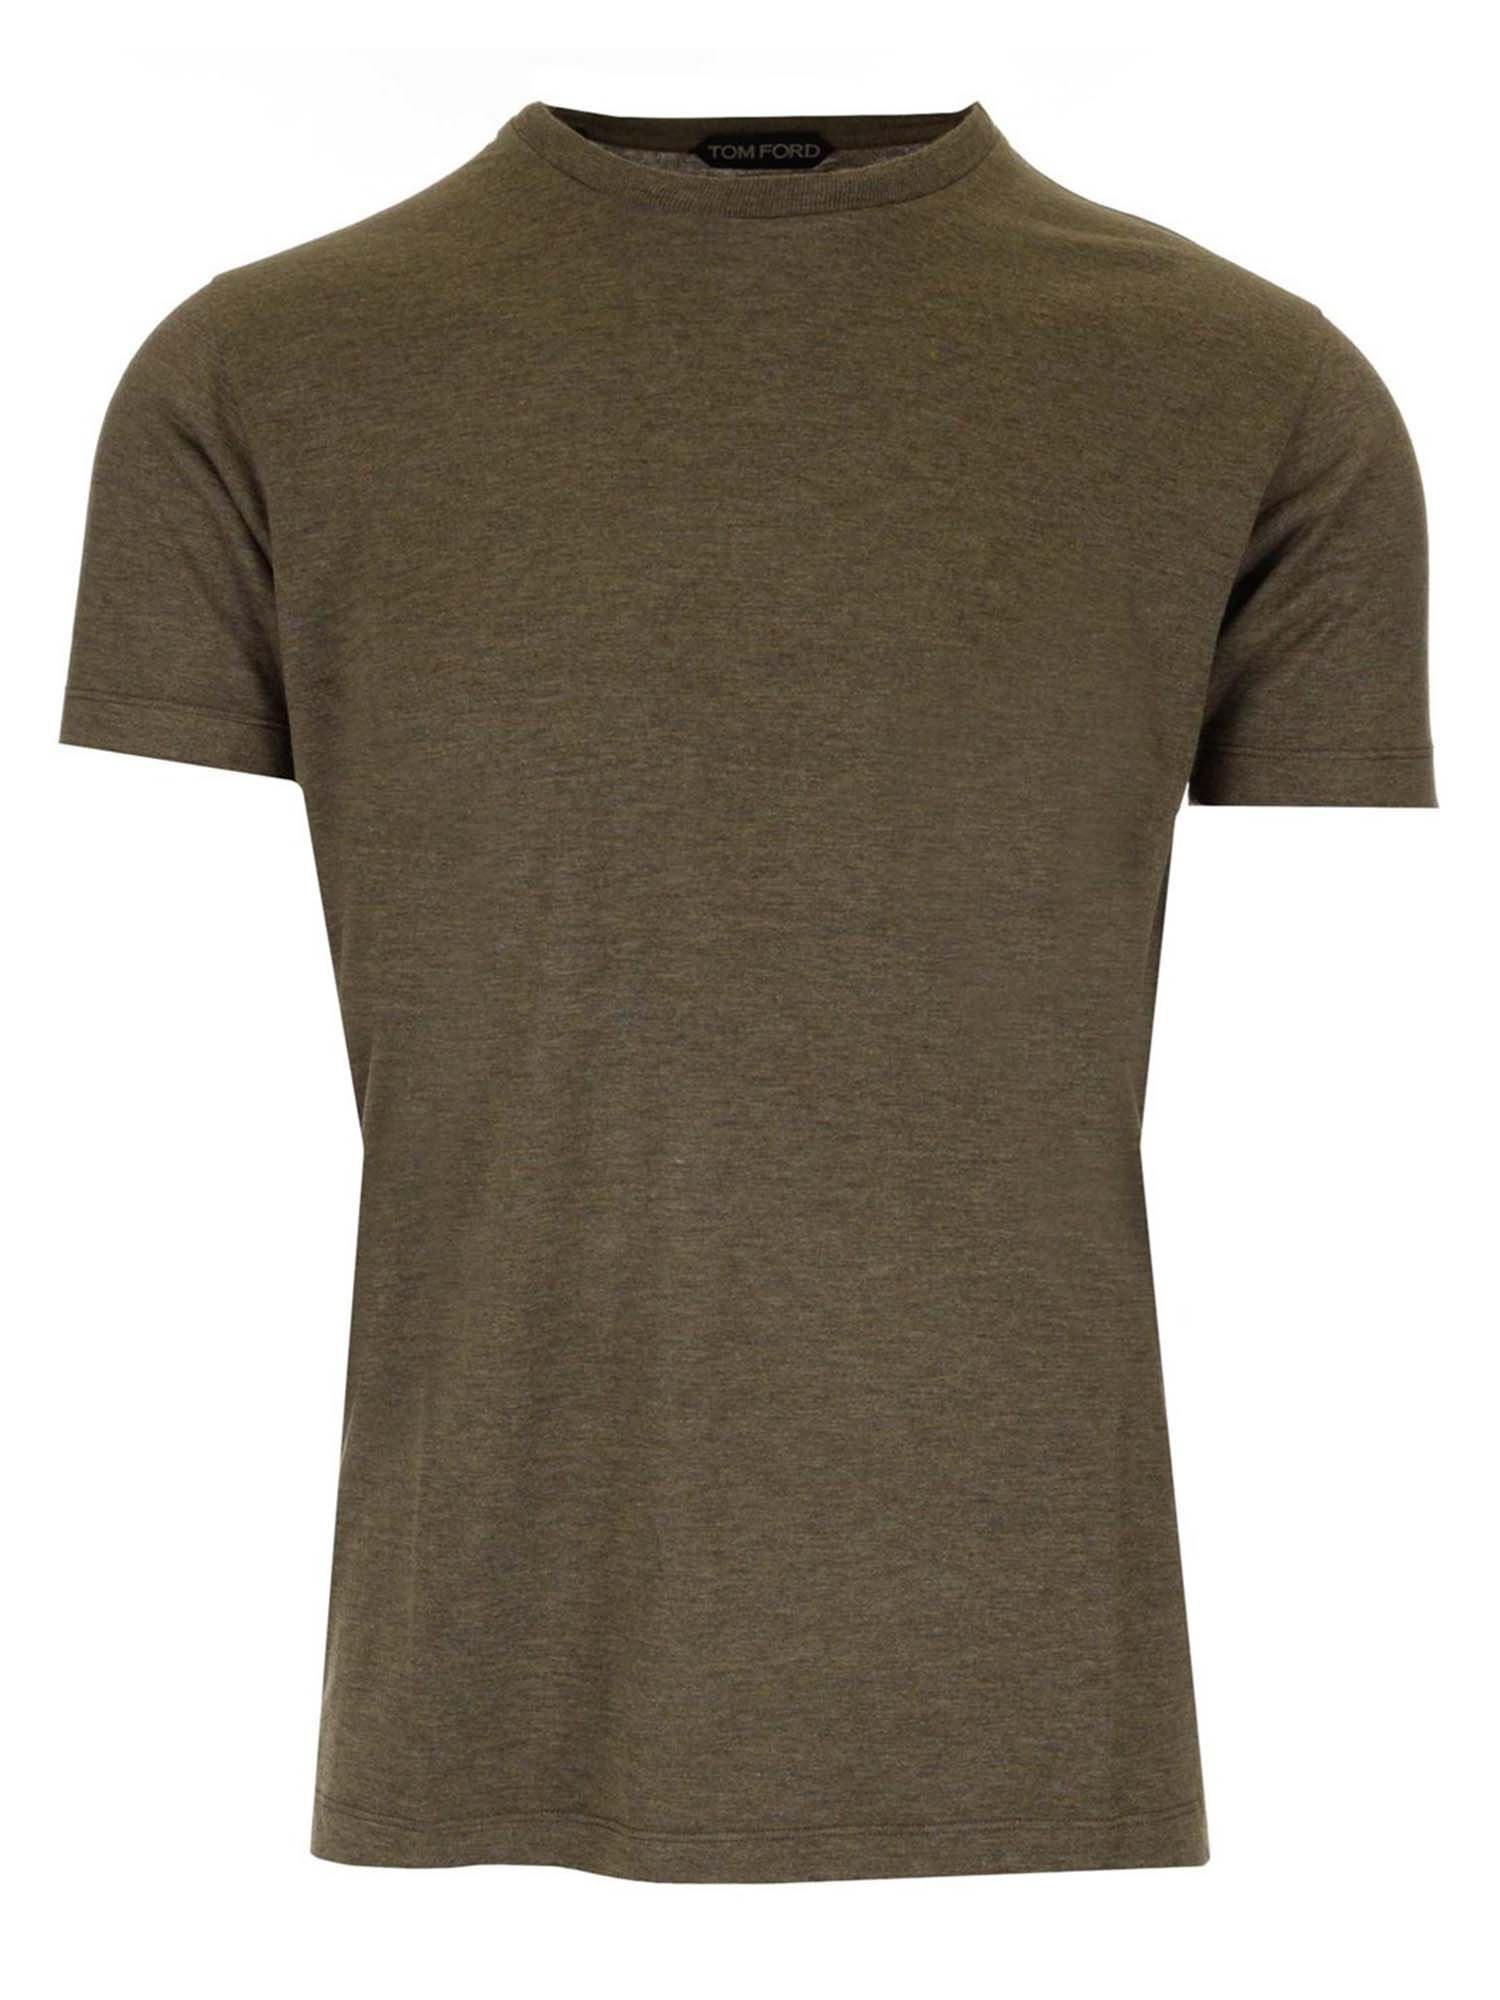 Tom Ford T-shirts CREWNECK T-SHIRT IN ARMY GREEN